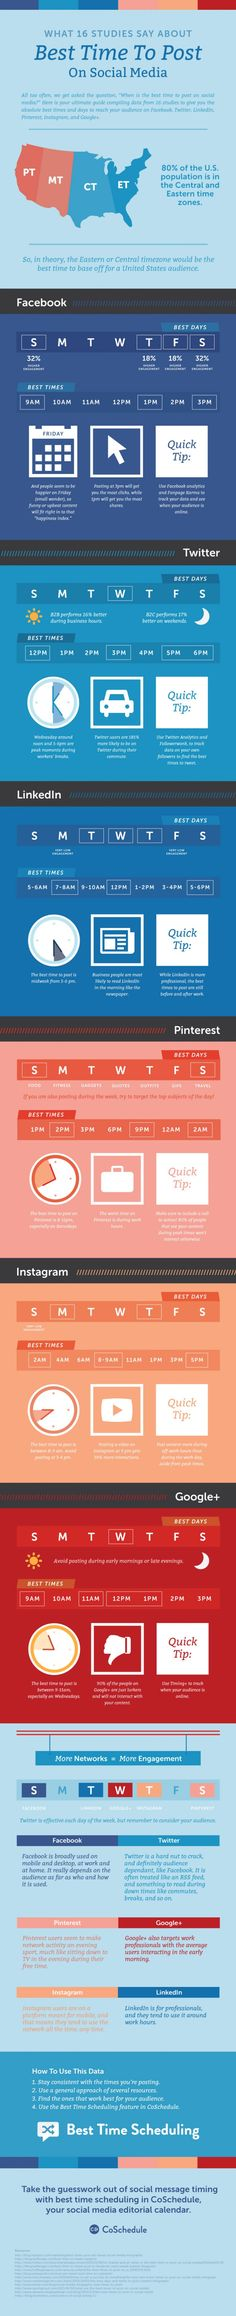 What 16 Studies Say About The Best Times To Post On Social Media